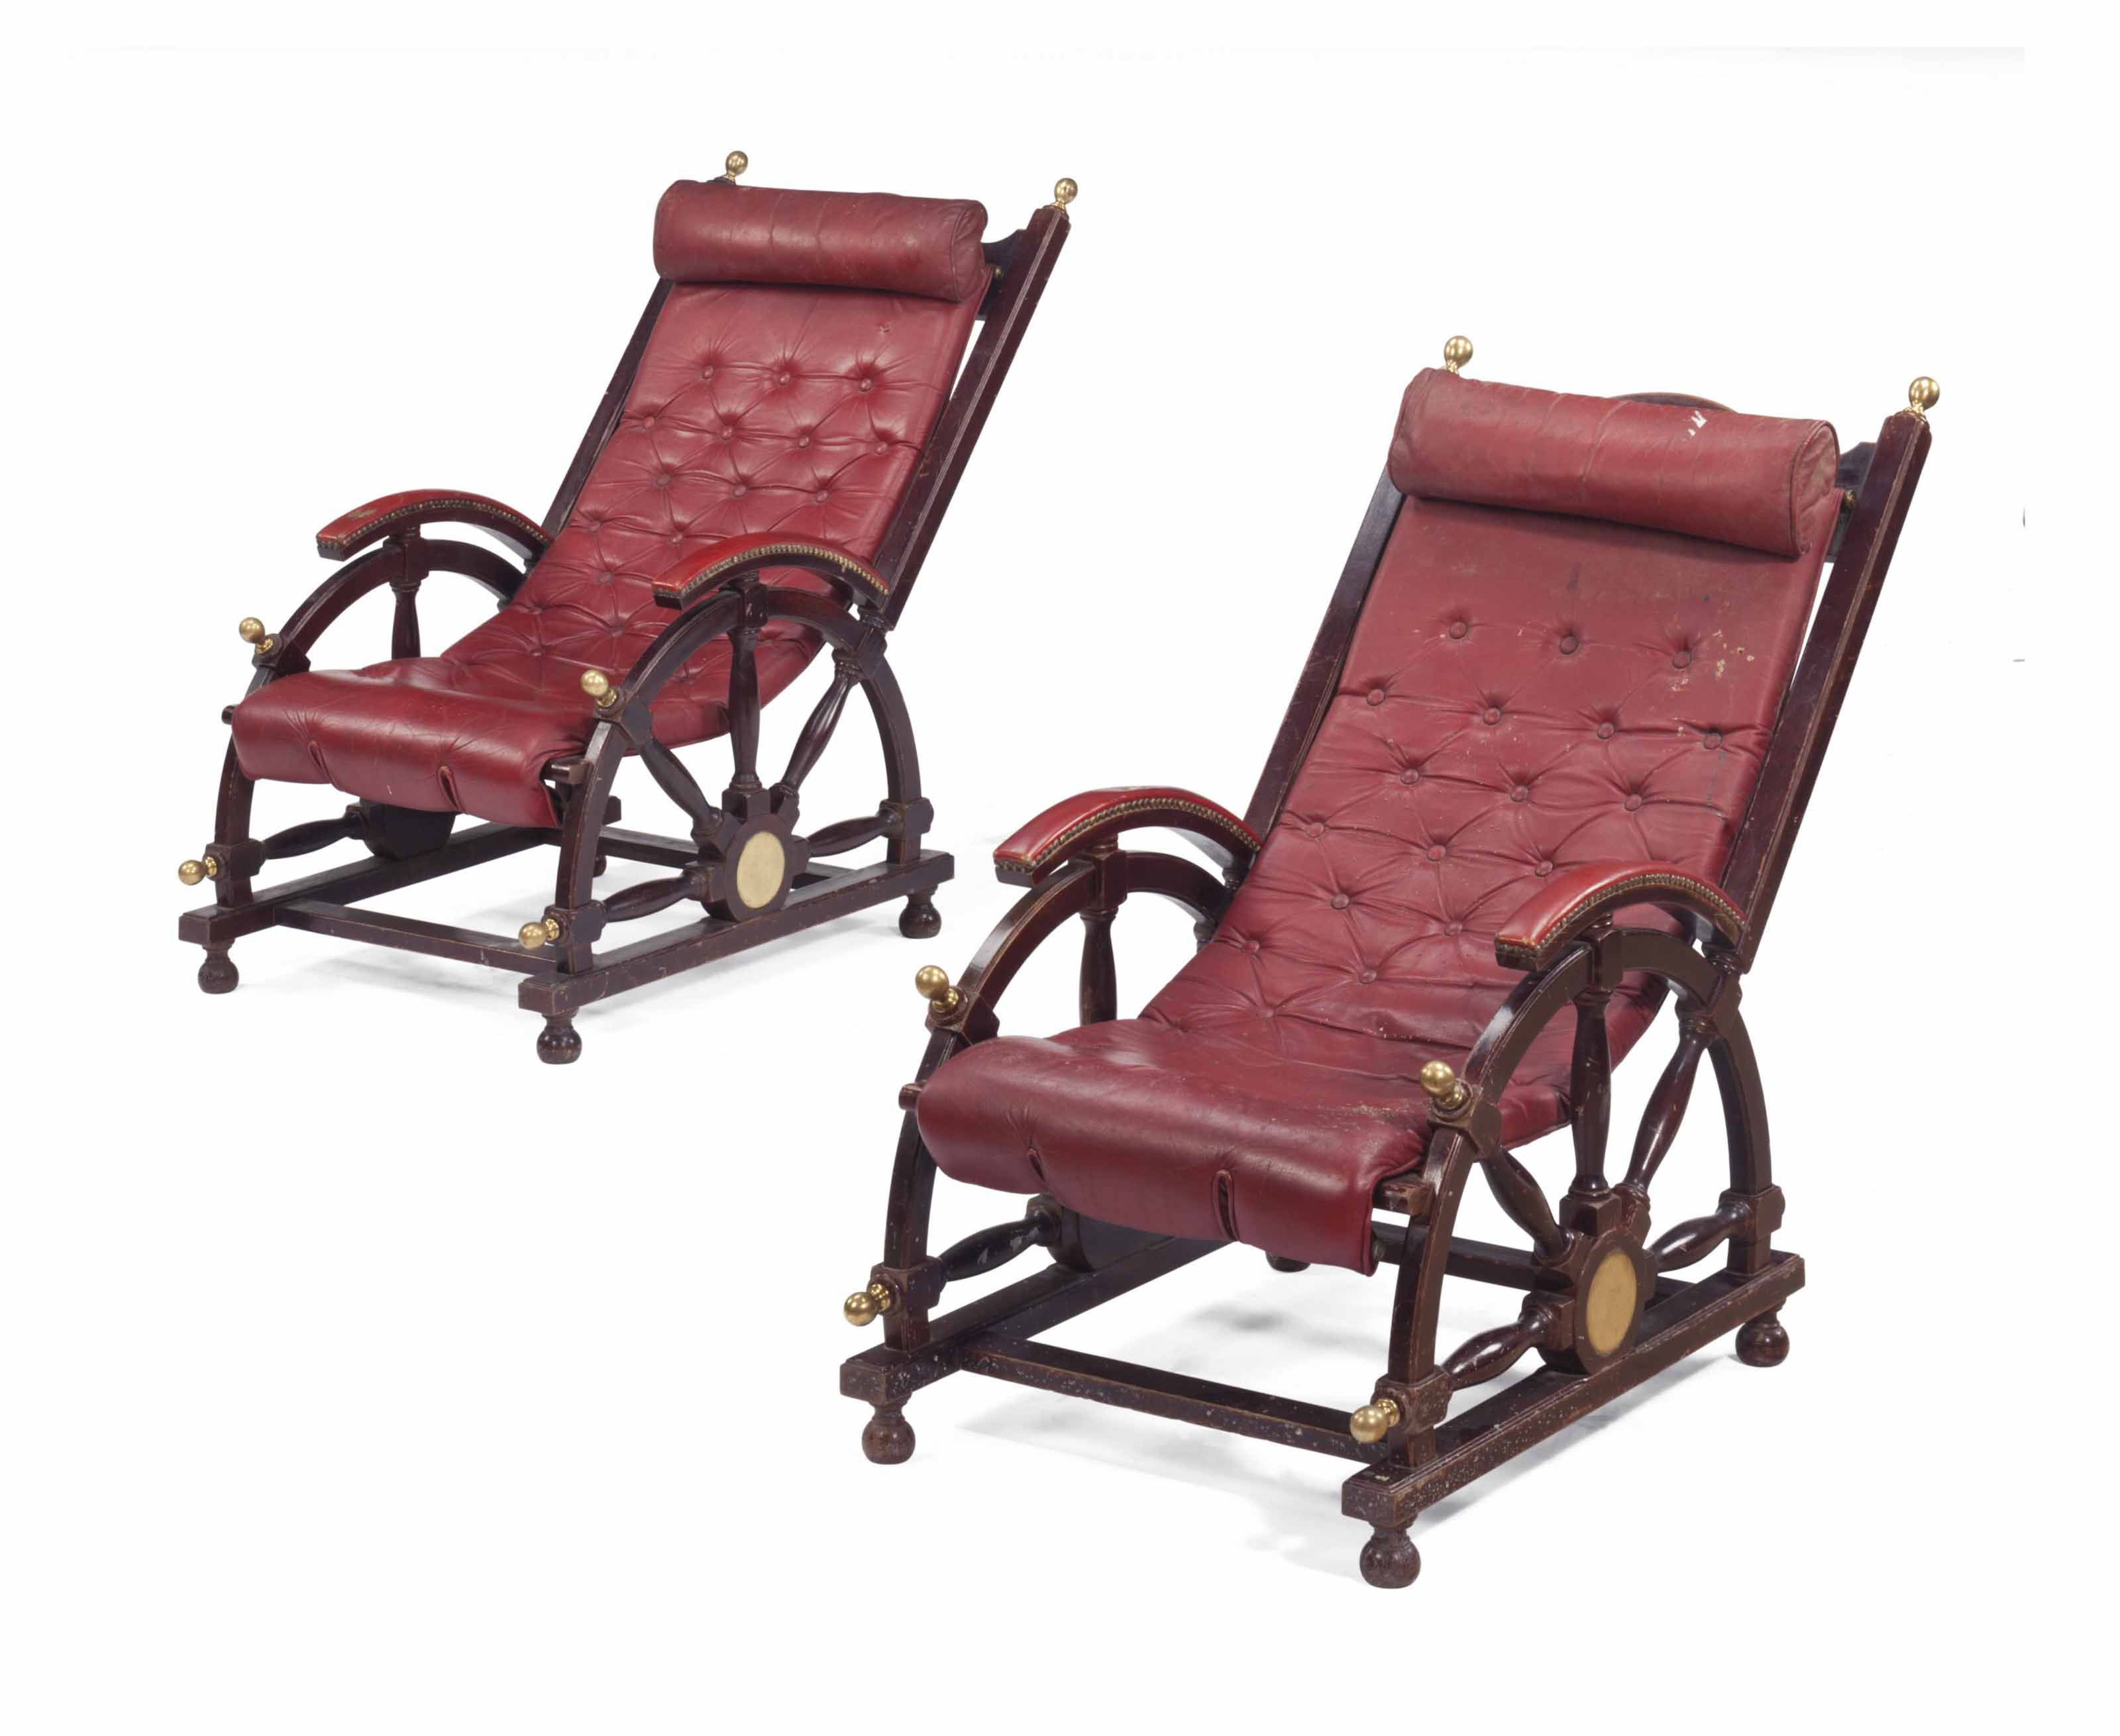 A PAIR OF BRASS-MOUNTED AND RED-LEATHER DECK-CHAIRS,